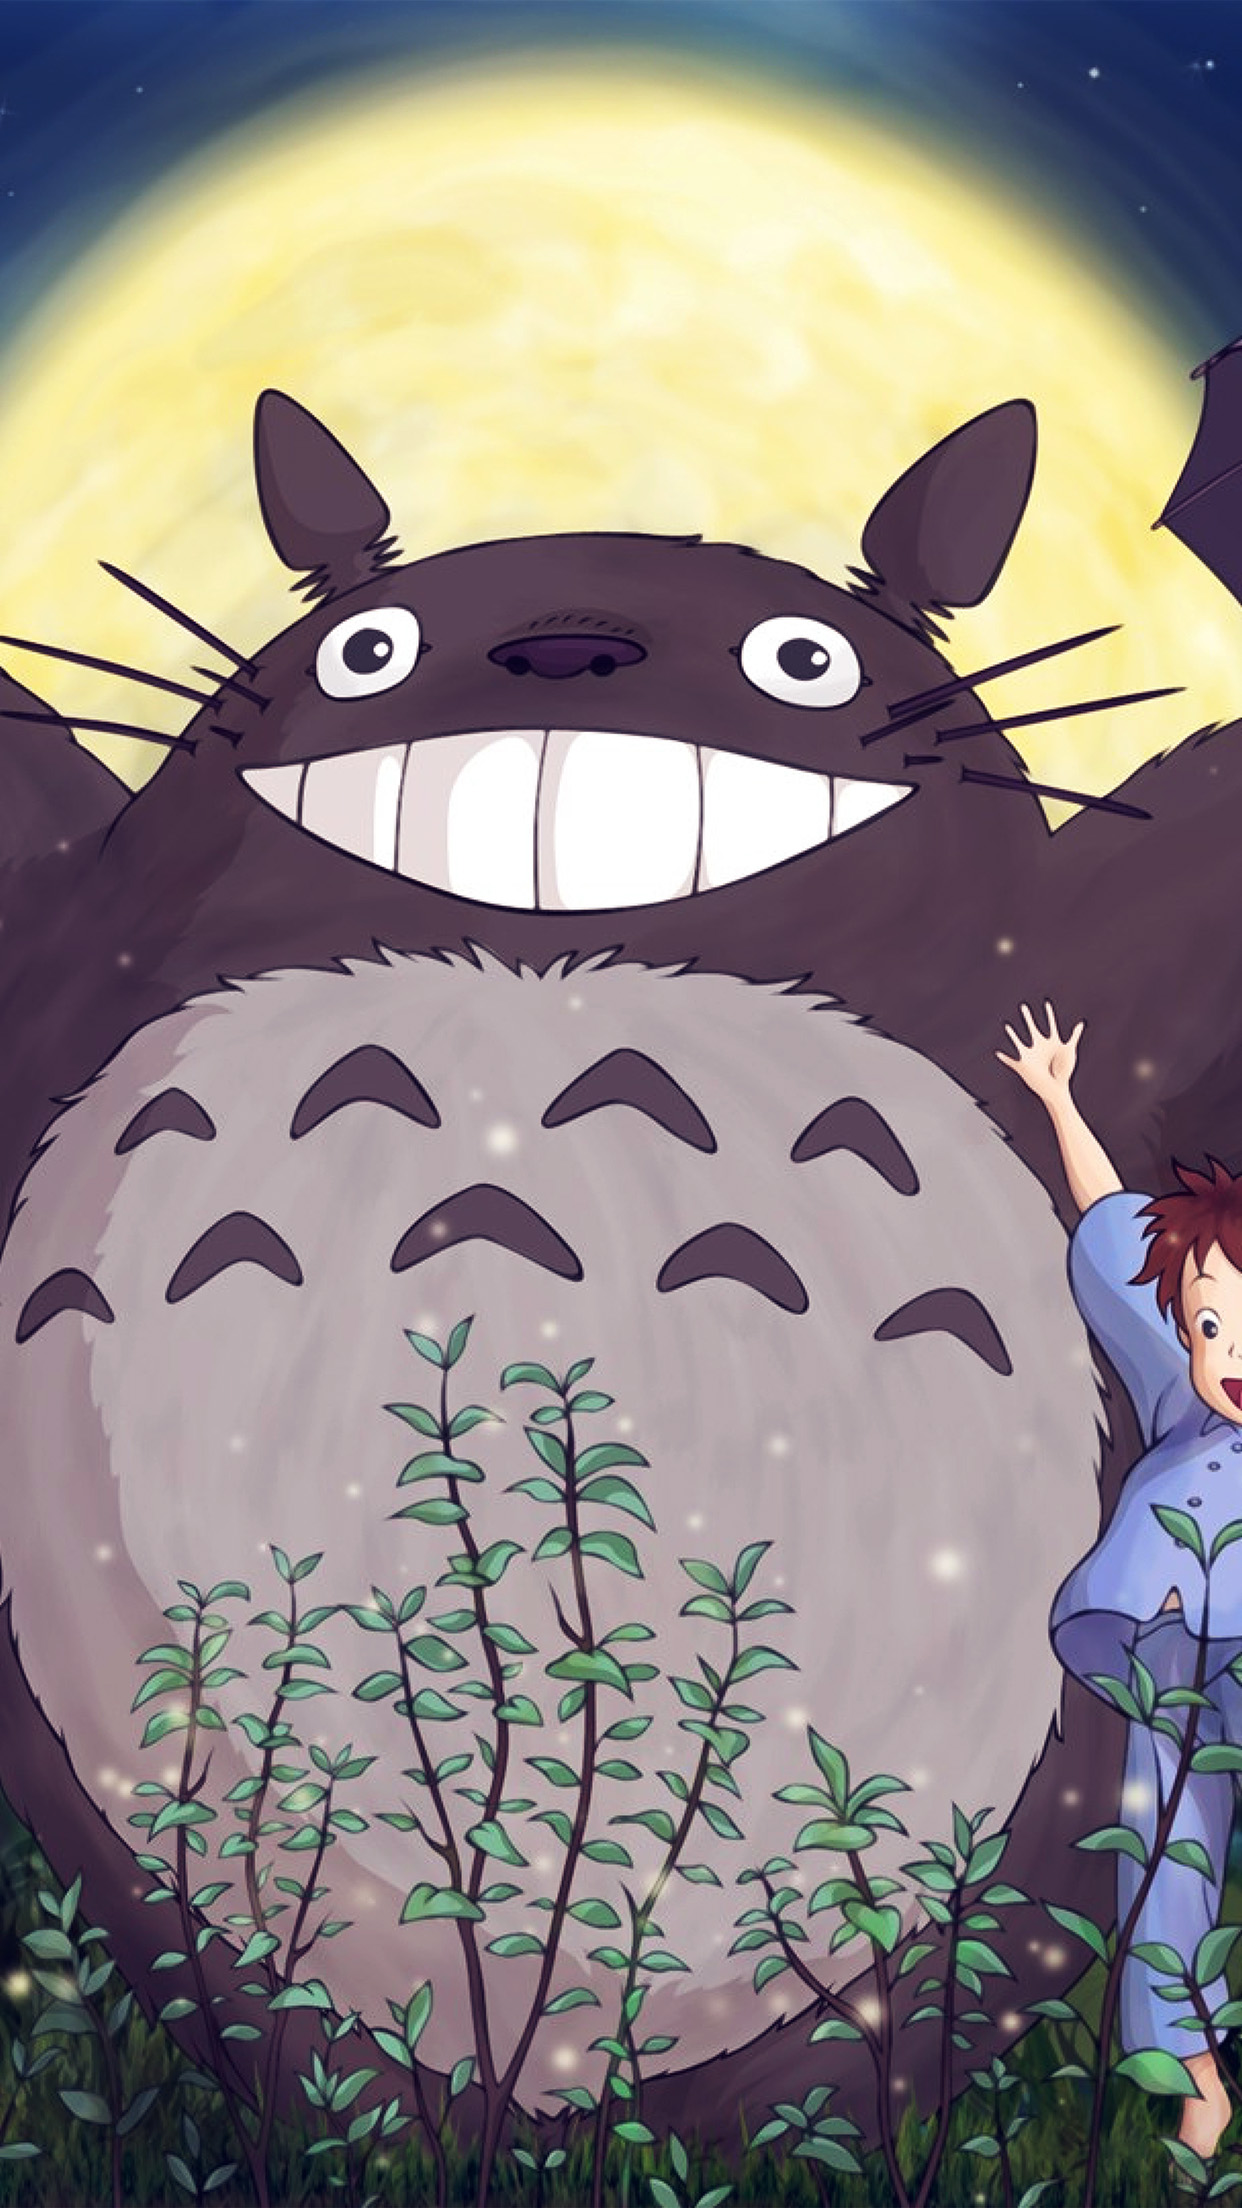 Iphone wallpaper au60 totoro forest anime - Kawaii anime iphone wallpaper ...